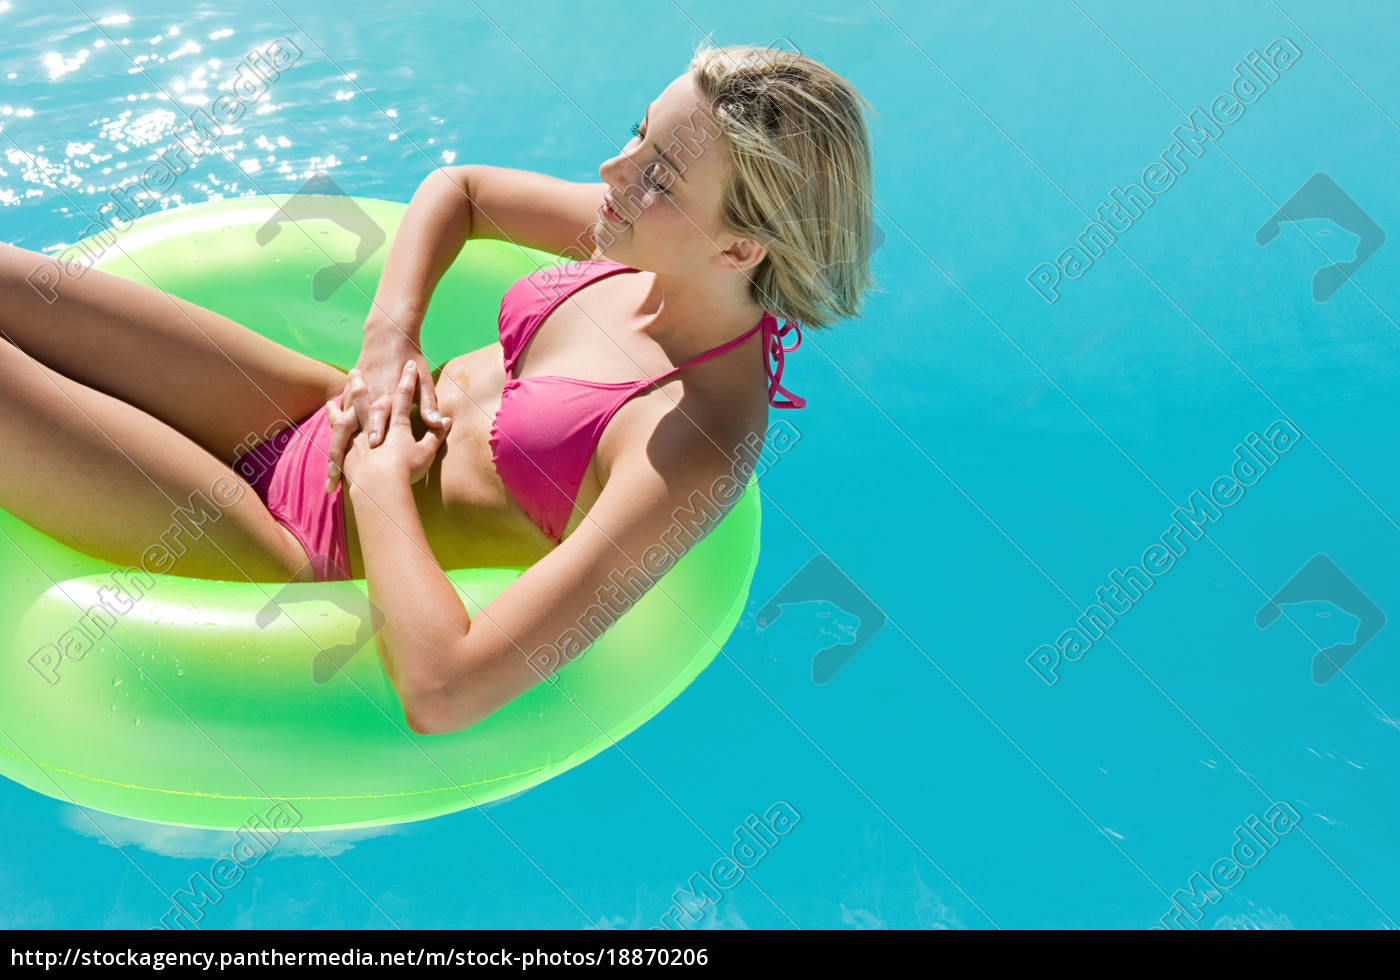 young, woman, in, swimming, pool - 18870206